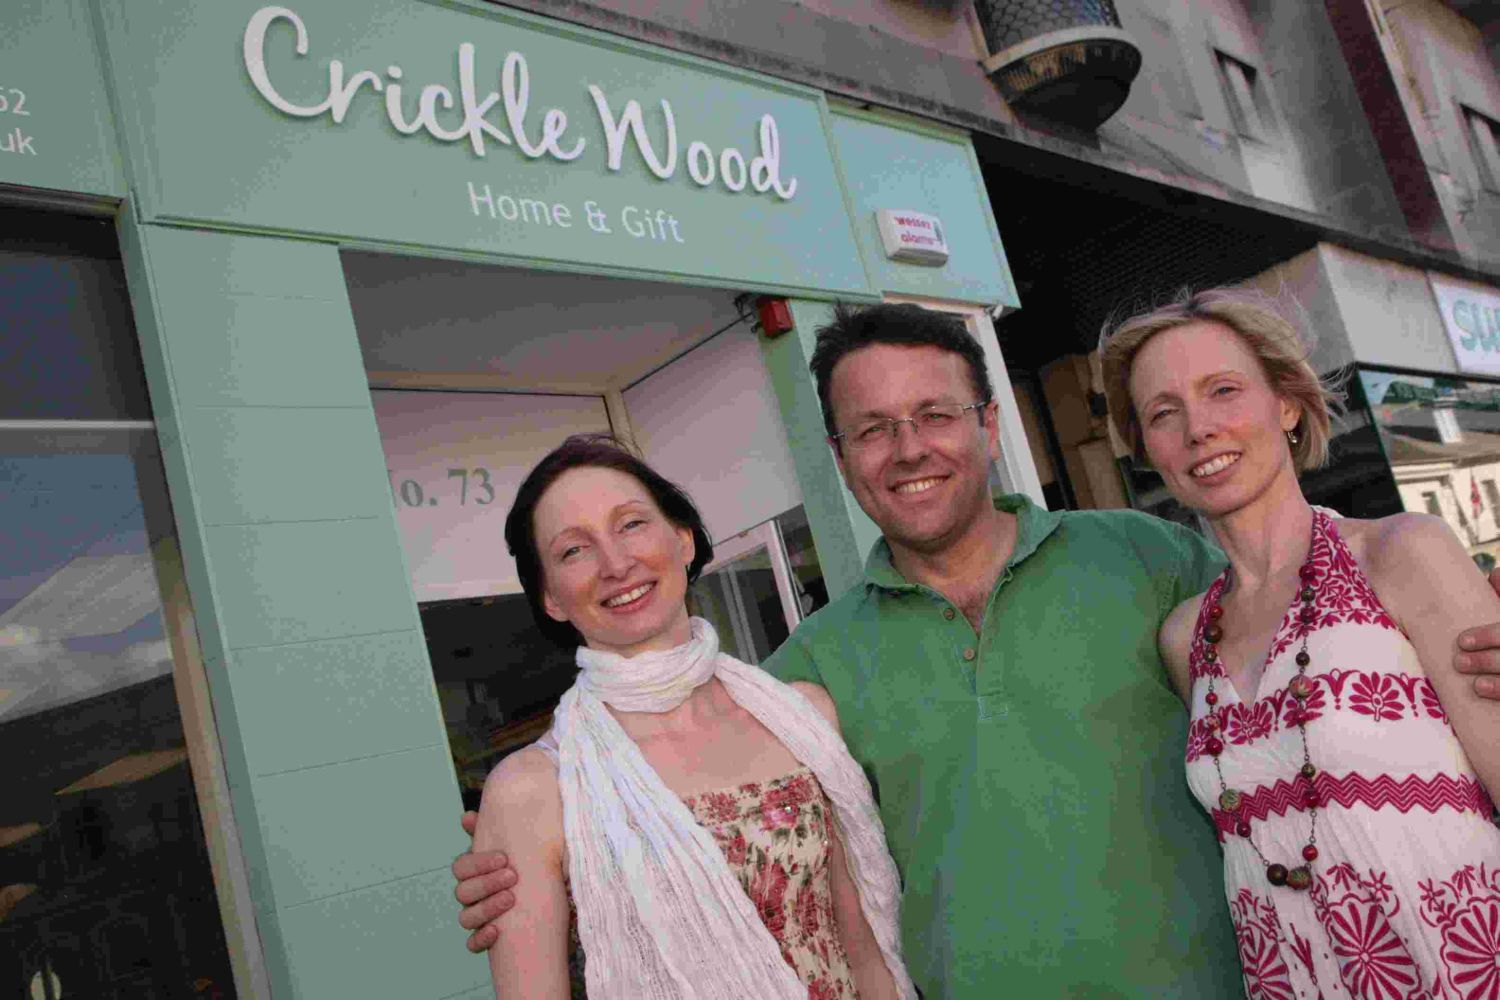 Proposals For Pizza Express In Christchurch Recommended For